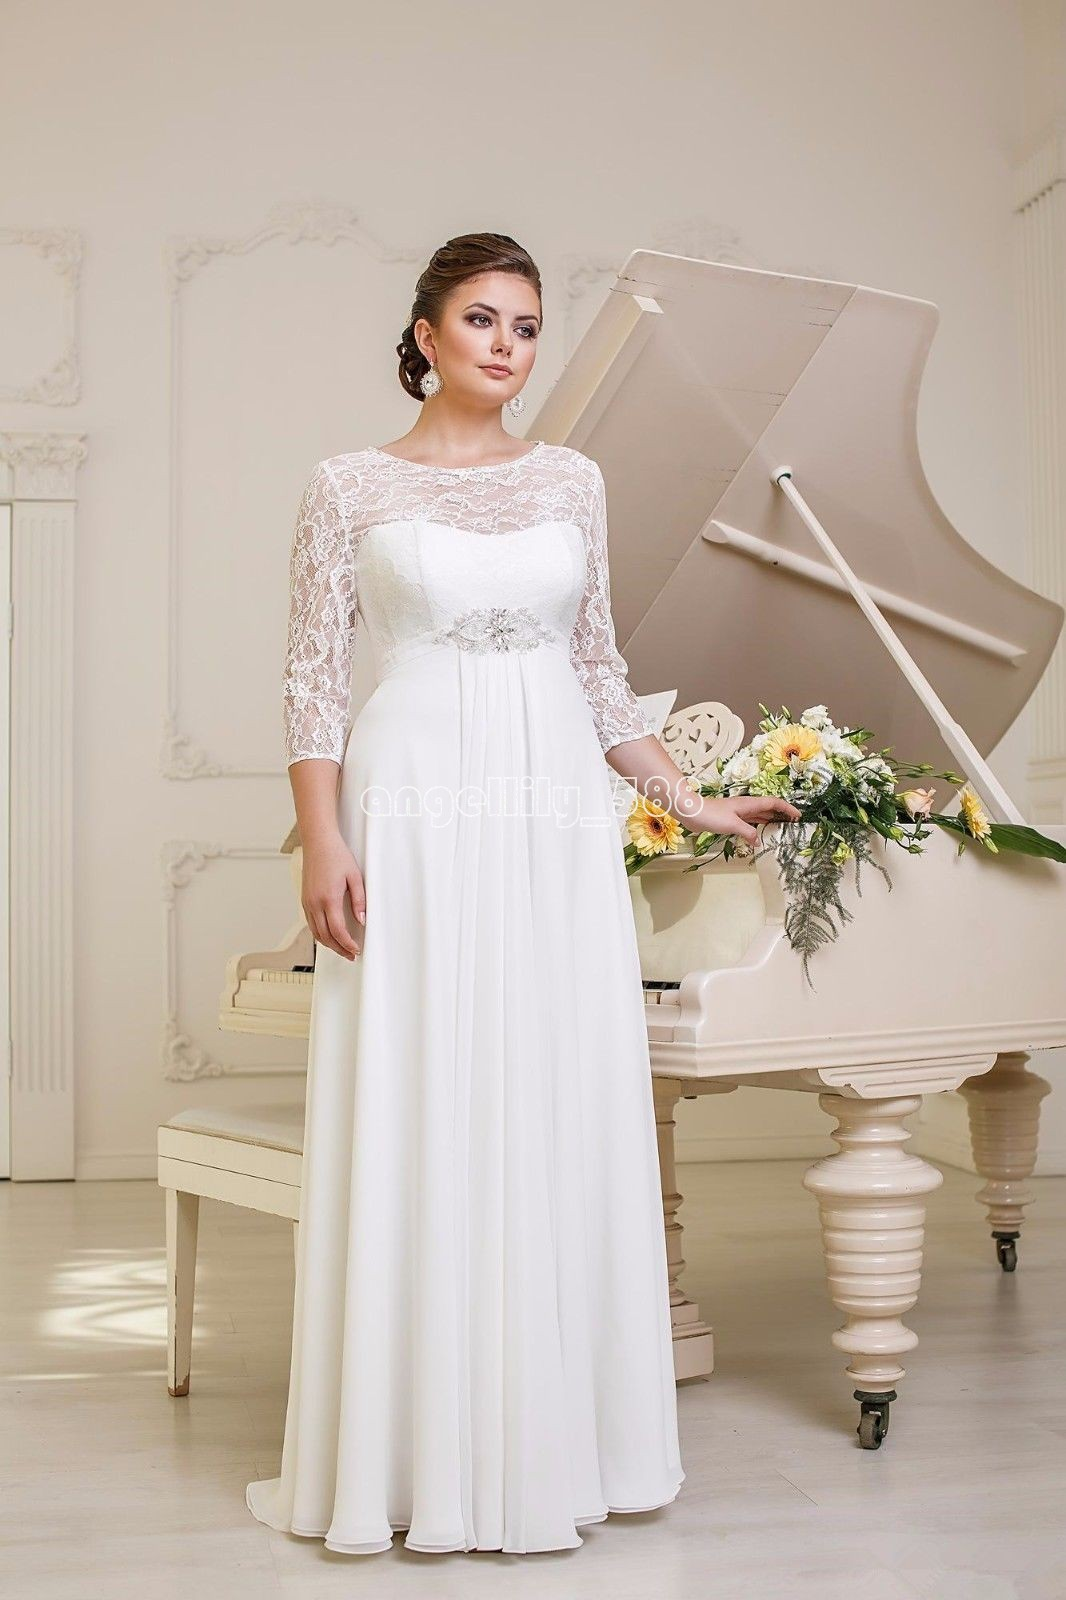 New lace chiffon wedding dresses bridal gown custom plus for Ebay wedding dresses size 18 uk